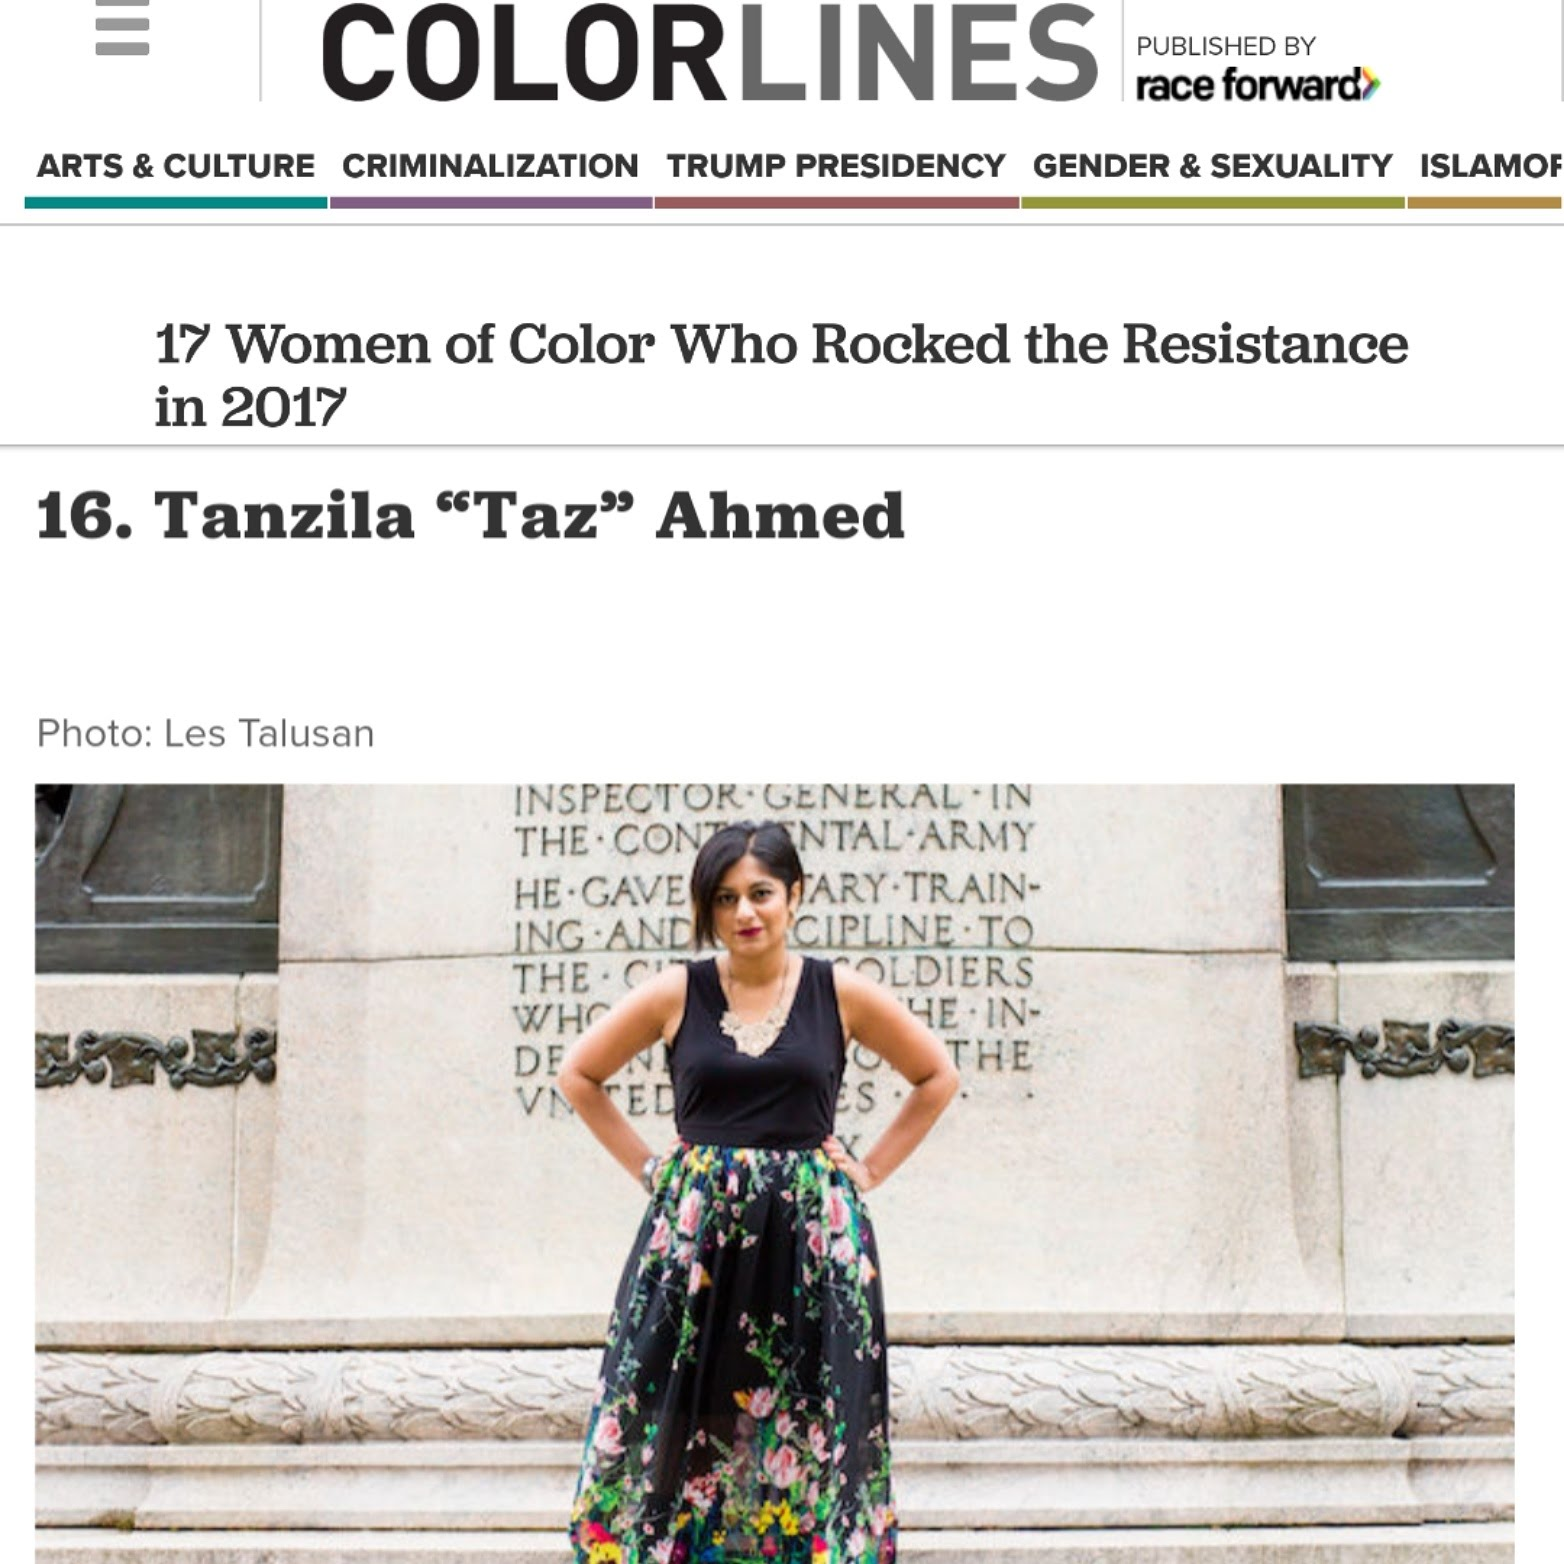 17 Women of Color Who Rocked the Resistance in 2017 | Colorlines   (Dec 2017)